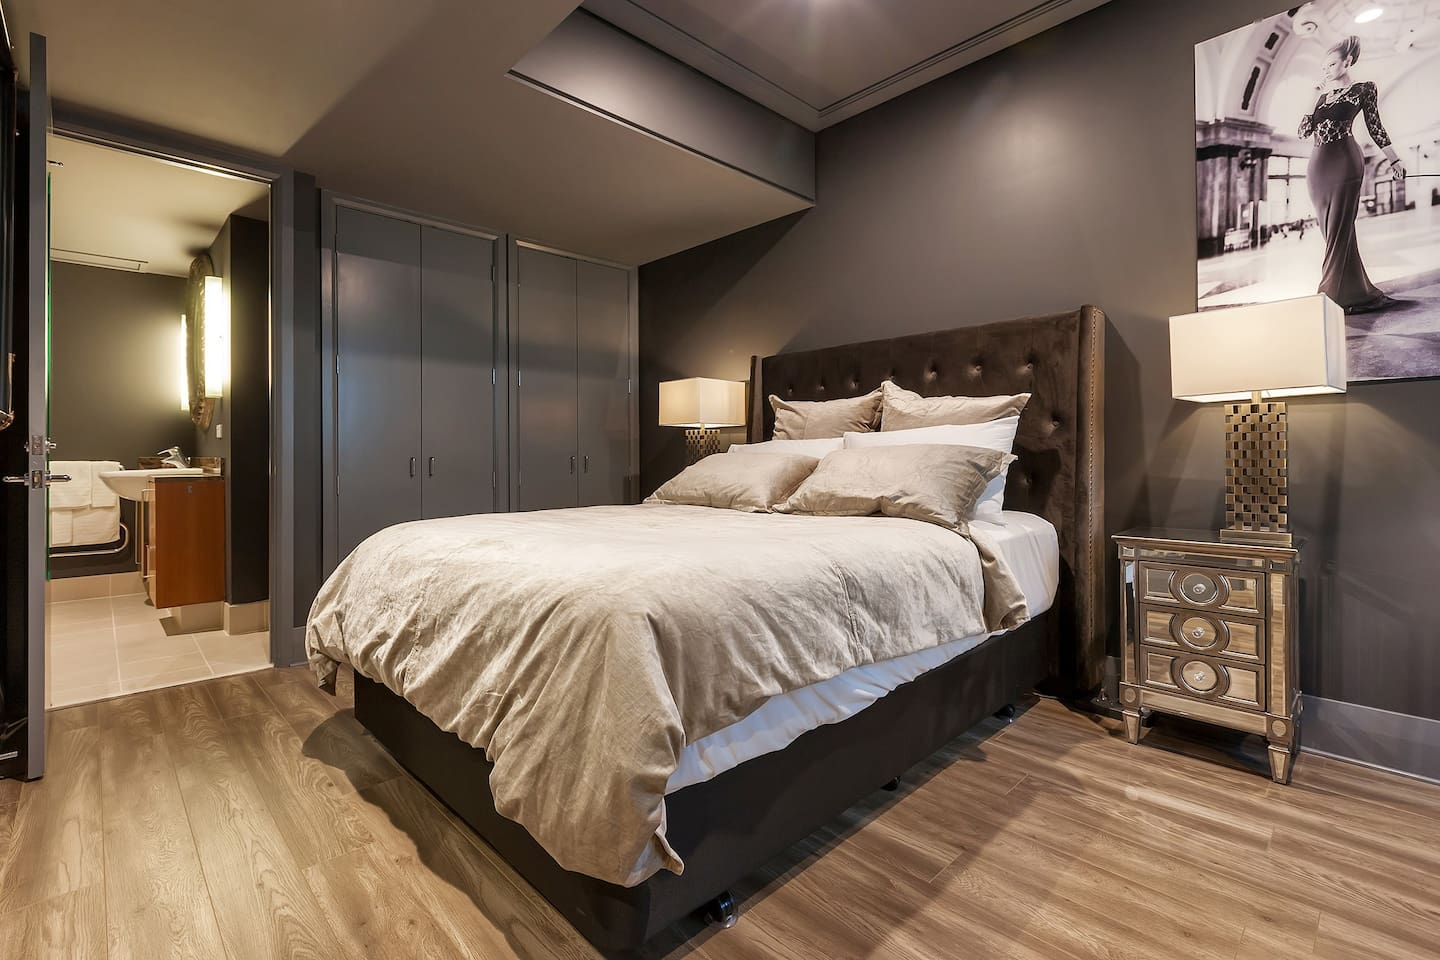 Beautiful big Queen bed with extra large duvet and comfortable pillows